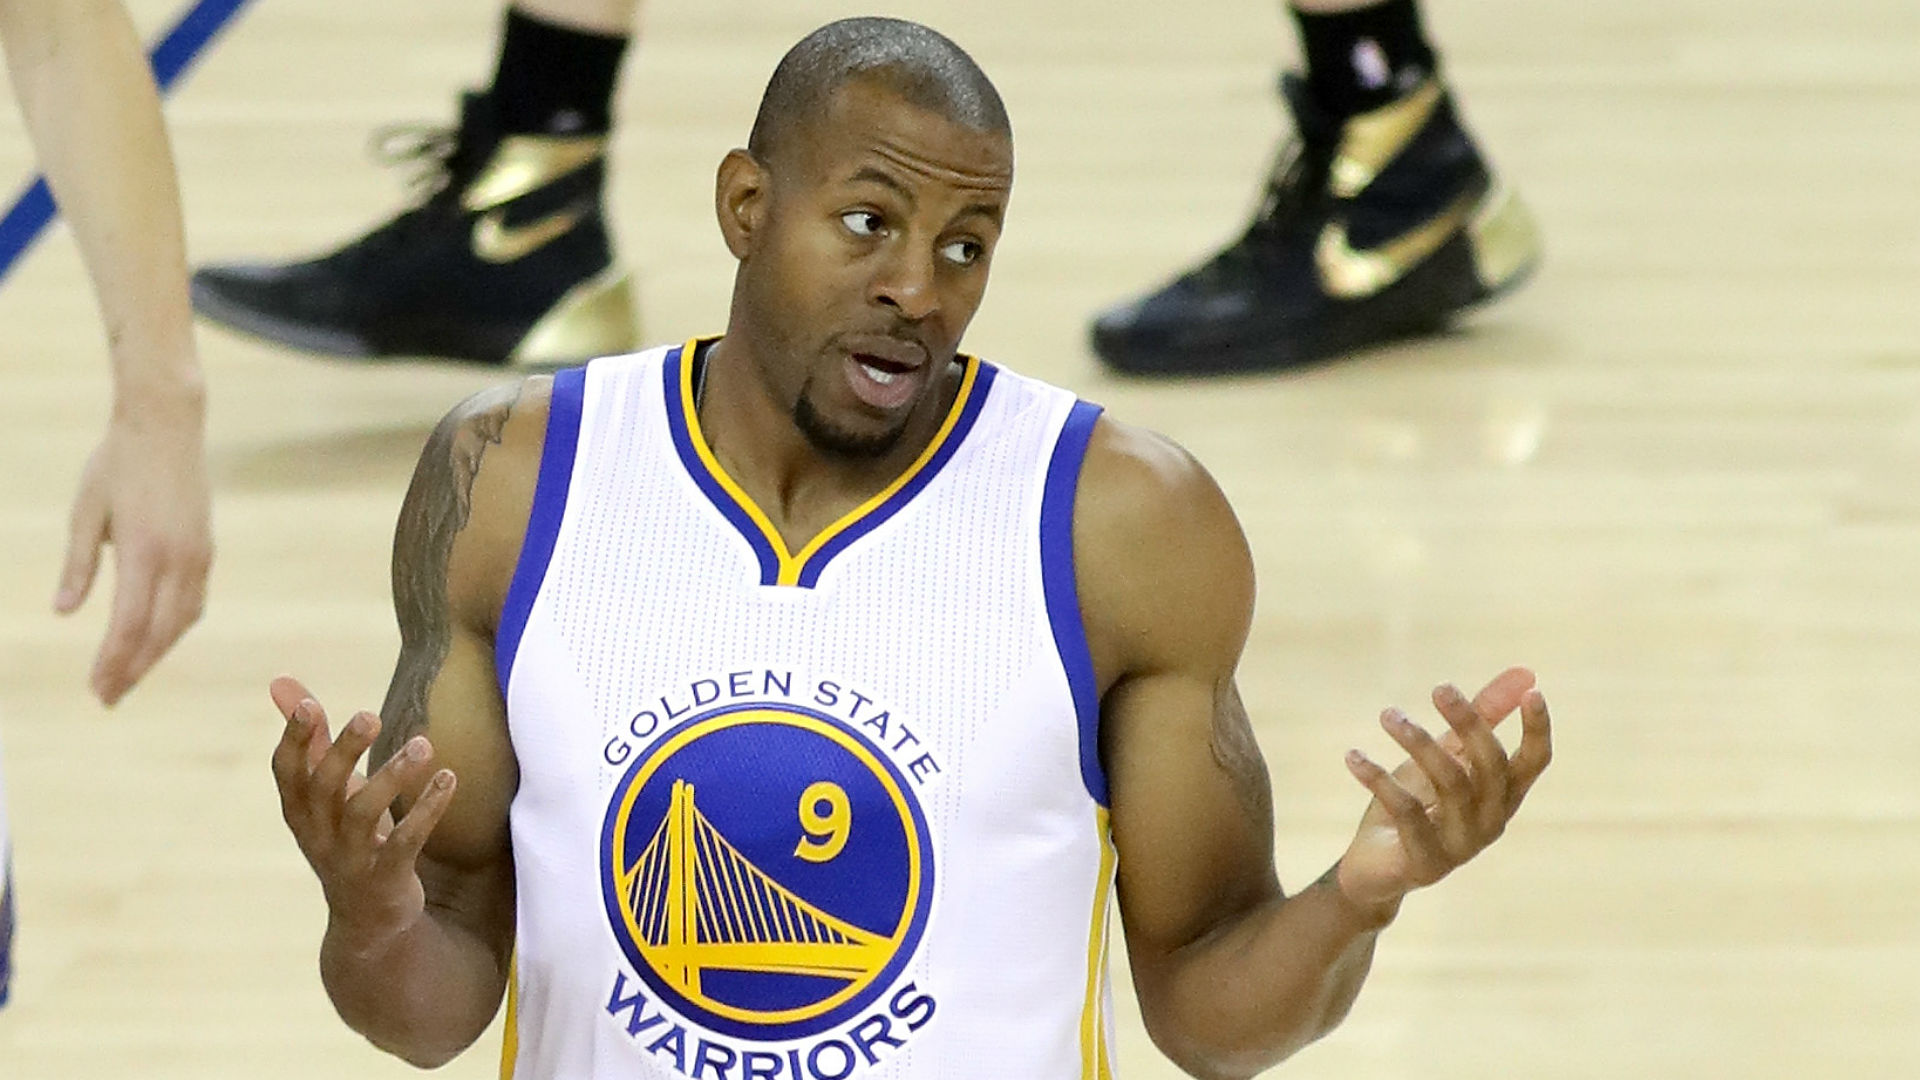 Download Andre Iguodala Wallpaper 63868 1920x1080 Px High Resolution